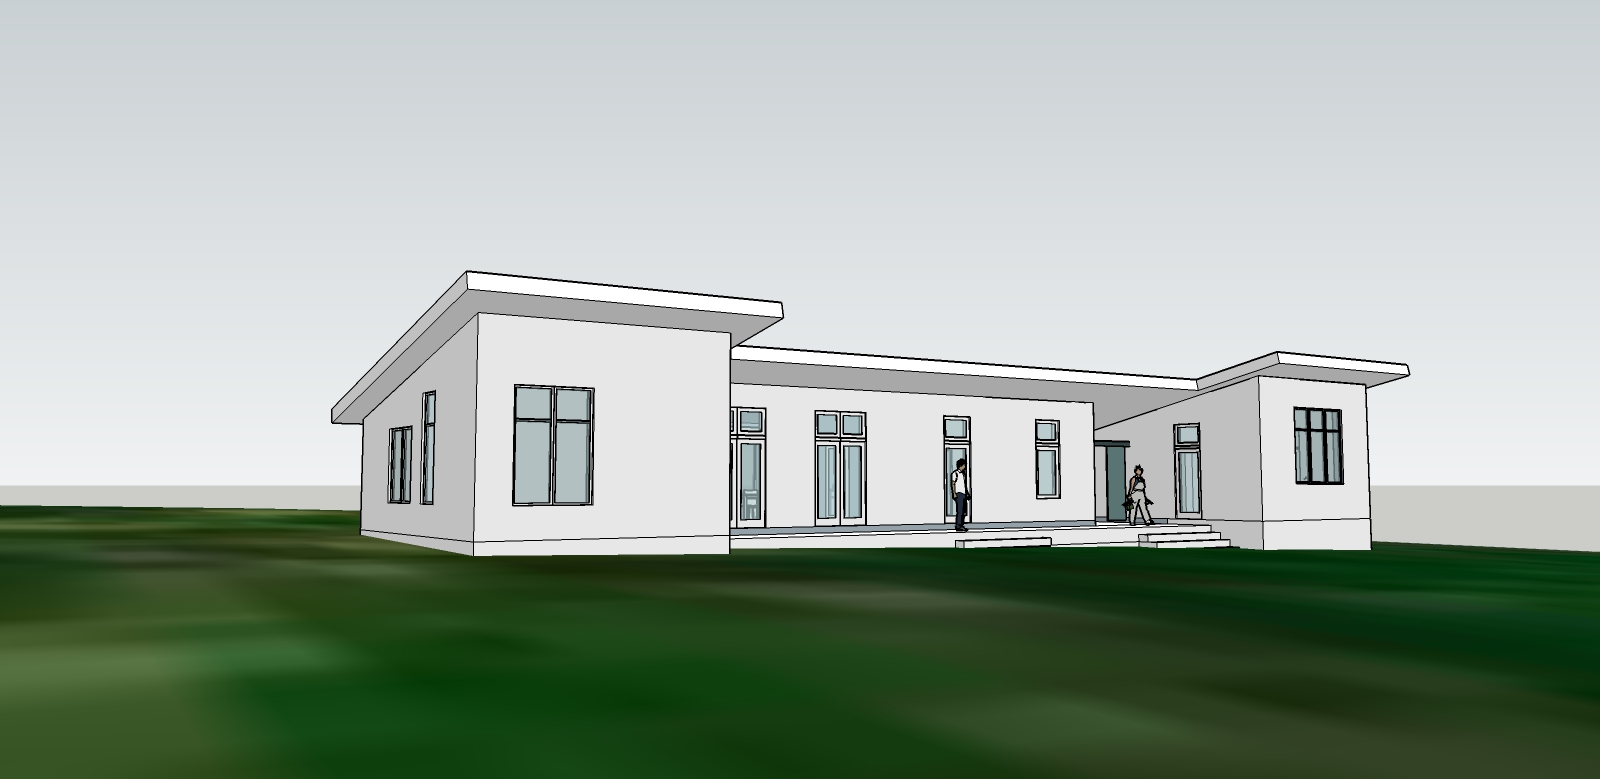 Final Proposal - front